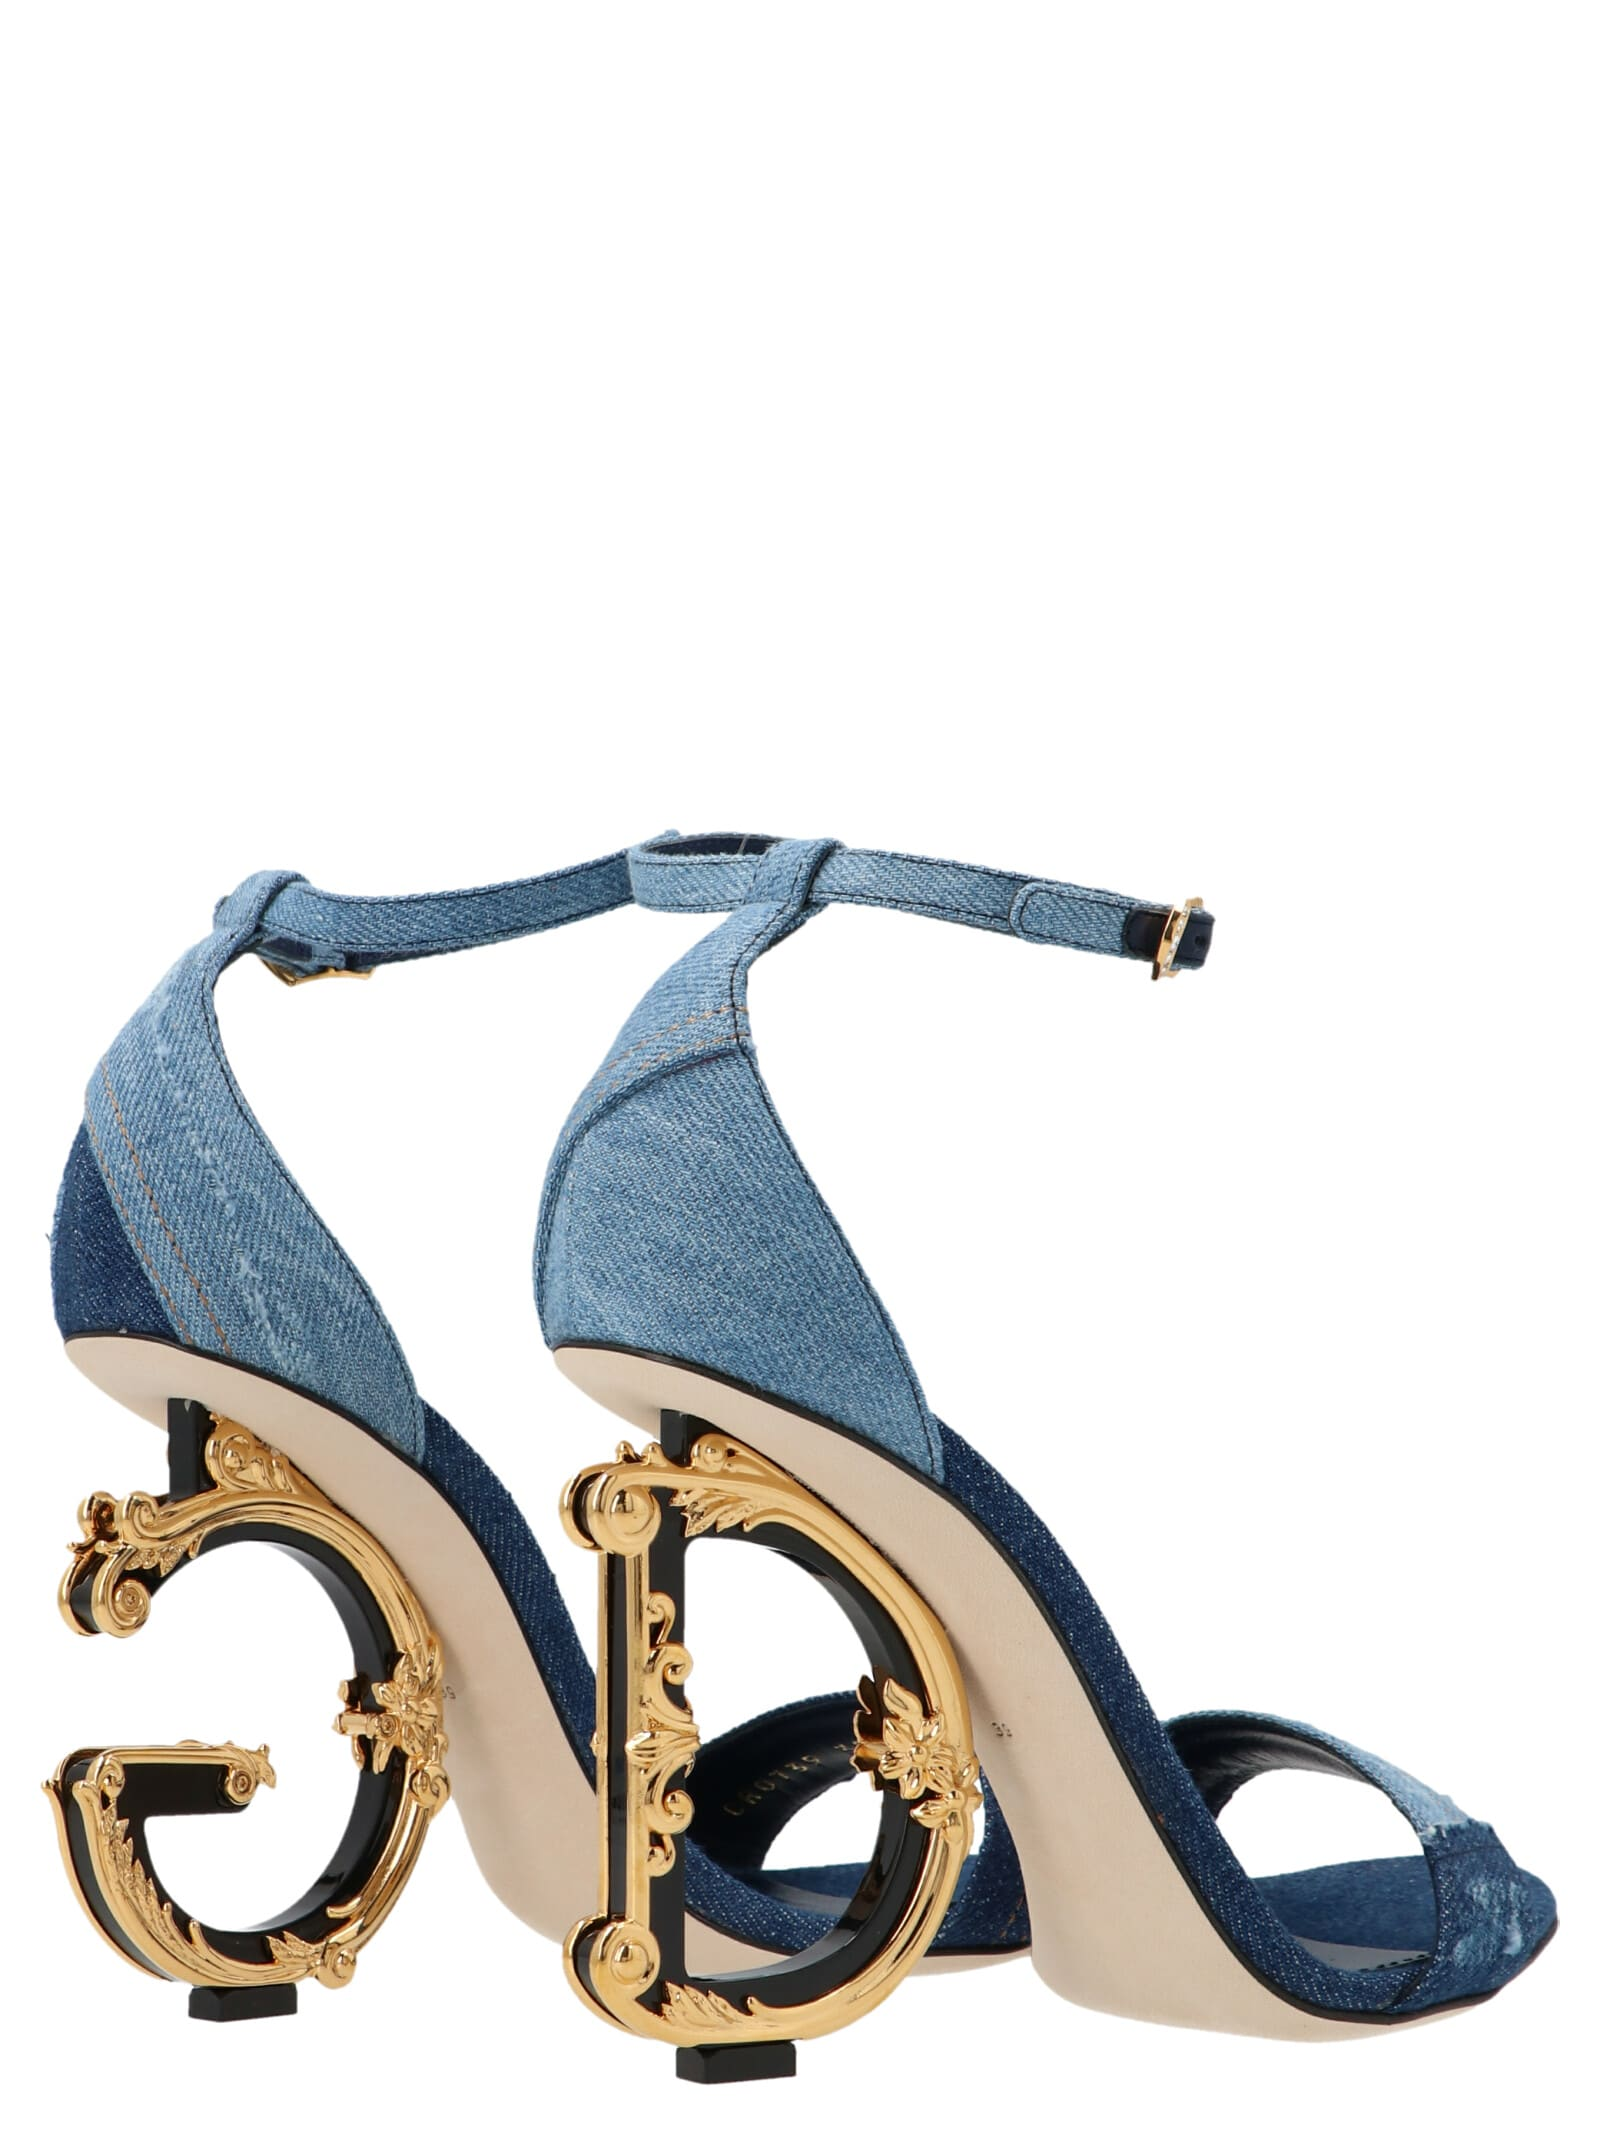 Dolce & Gabbana PATCHWORK SHOES